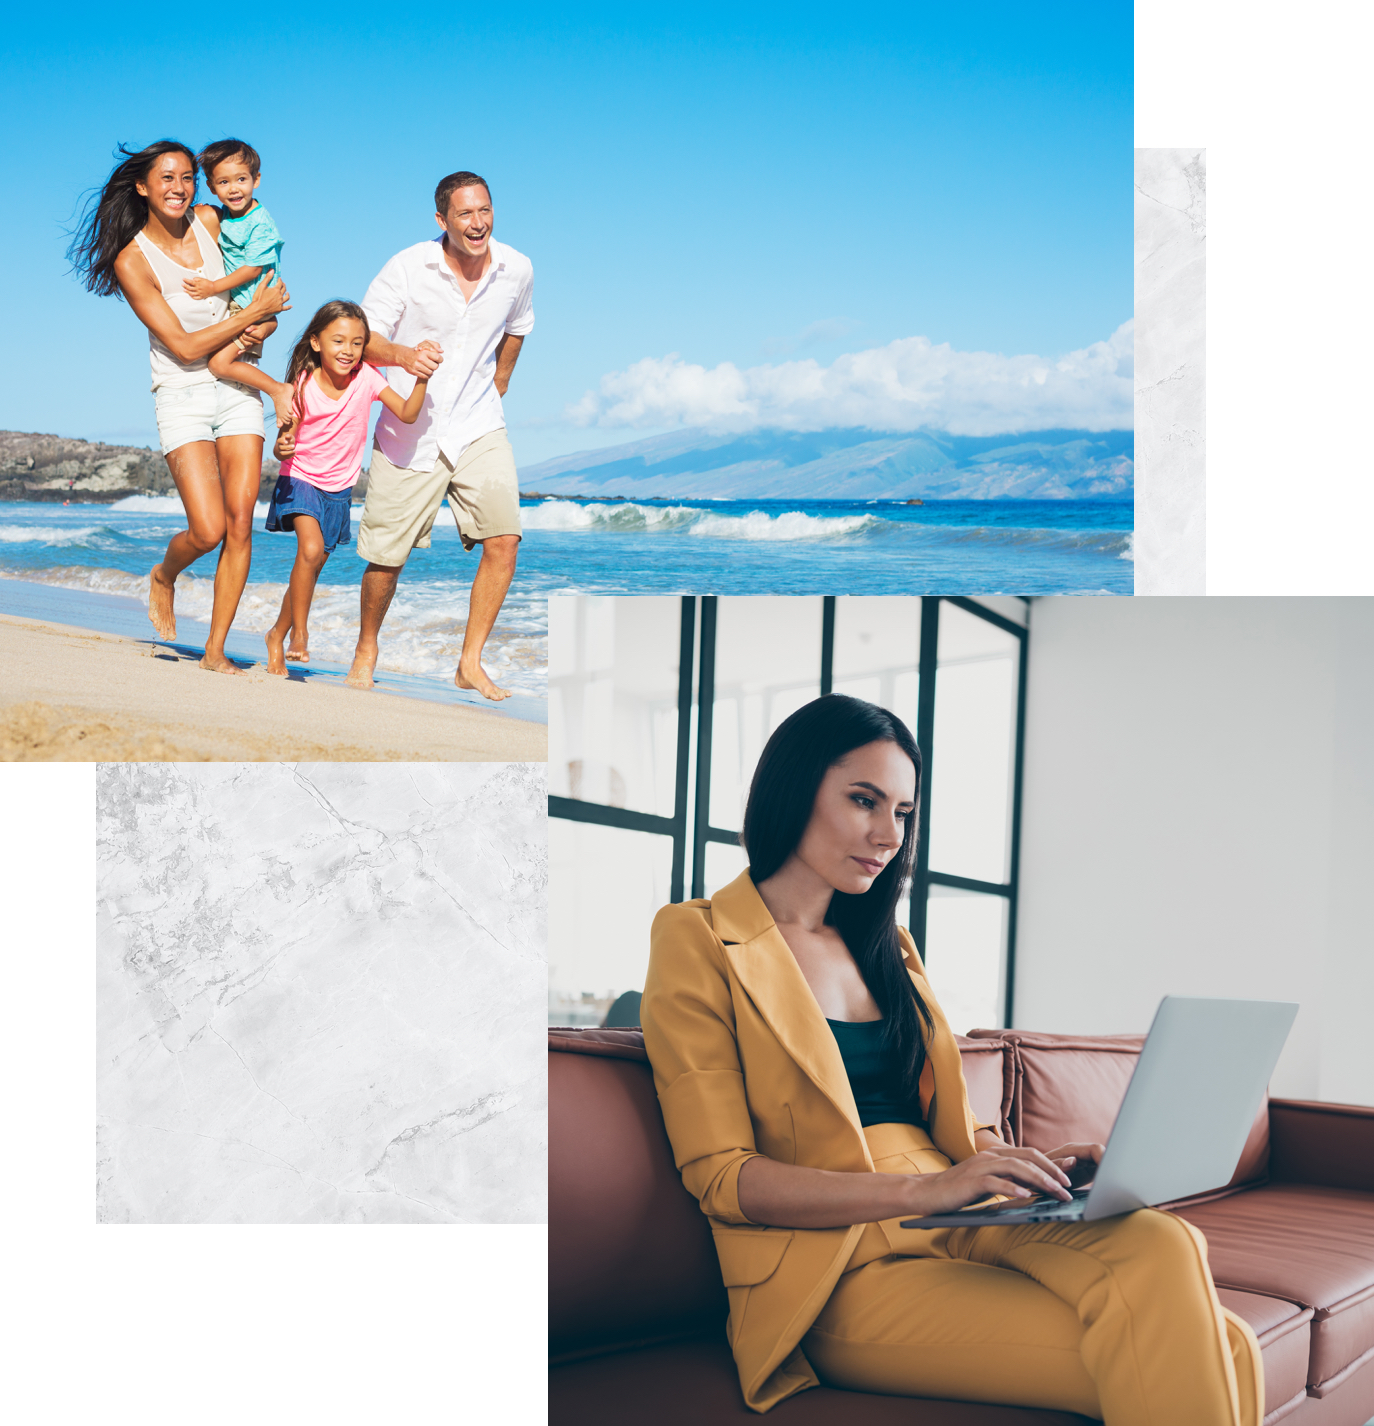 a family on the beach and a woman on her laptop